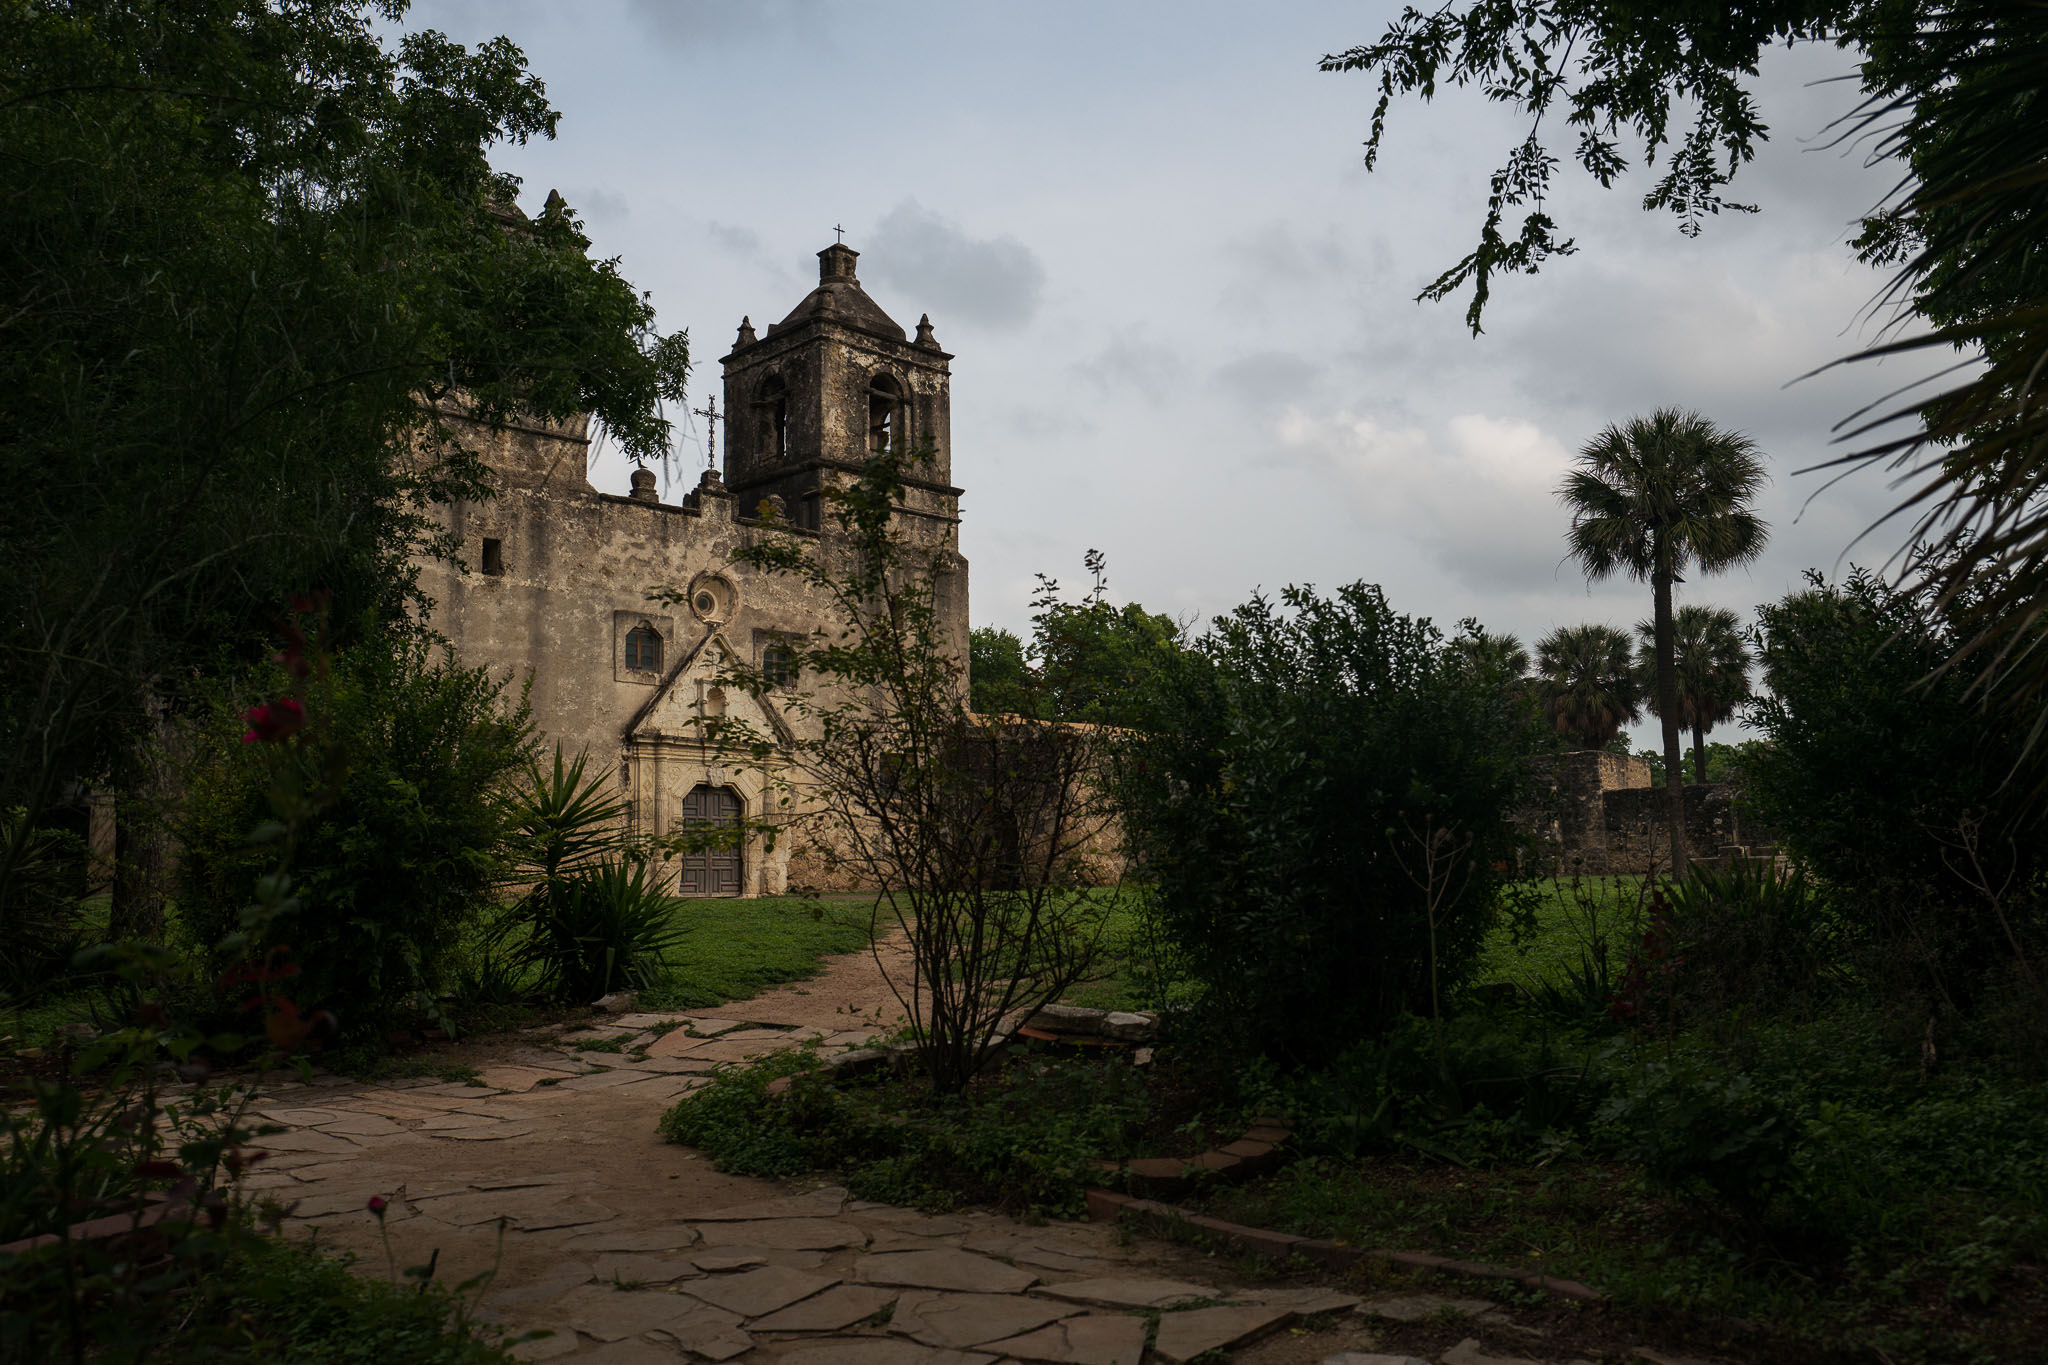 Mission Concepción at sunset. Photo by Scott Ball.